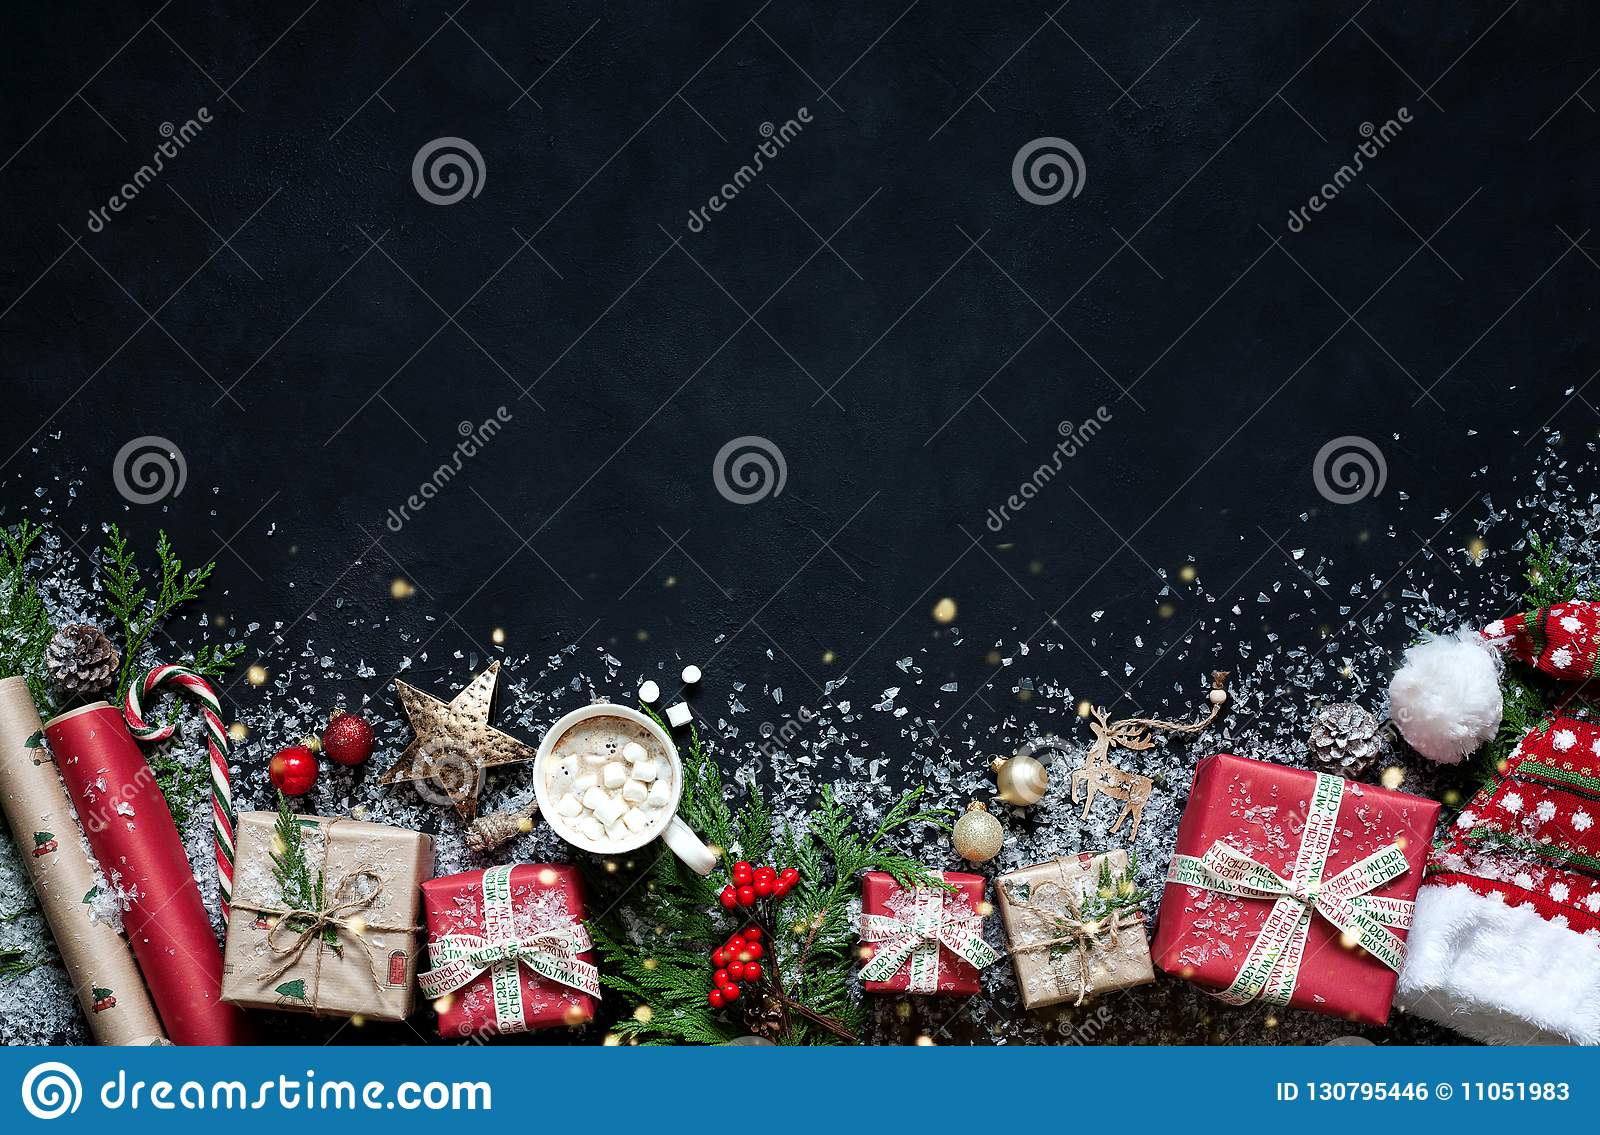 Christmas Composition On A Black Background Christmas Decorations ... 738144ea8056